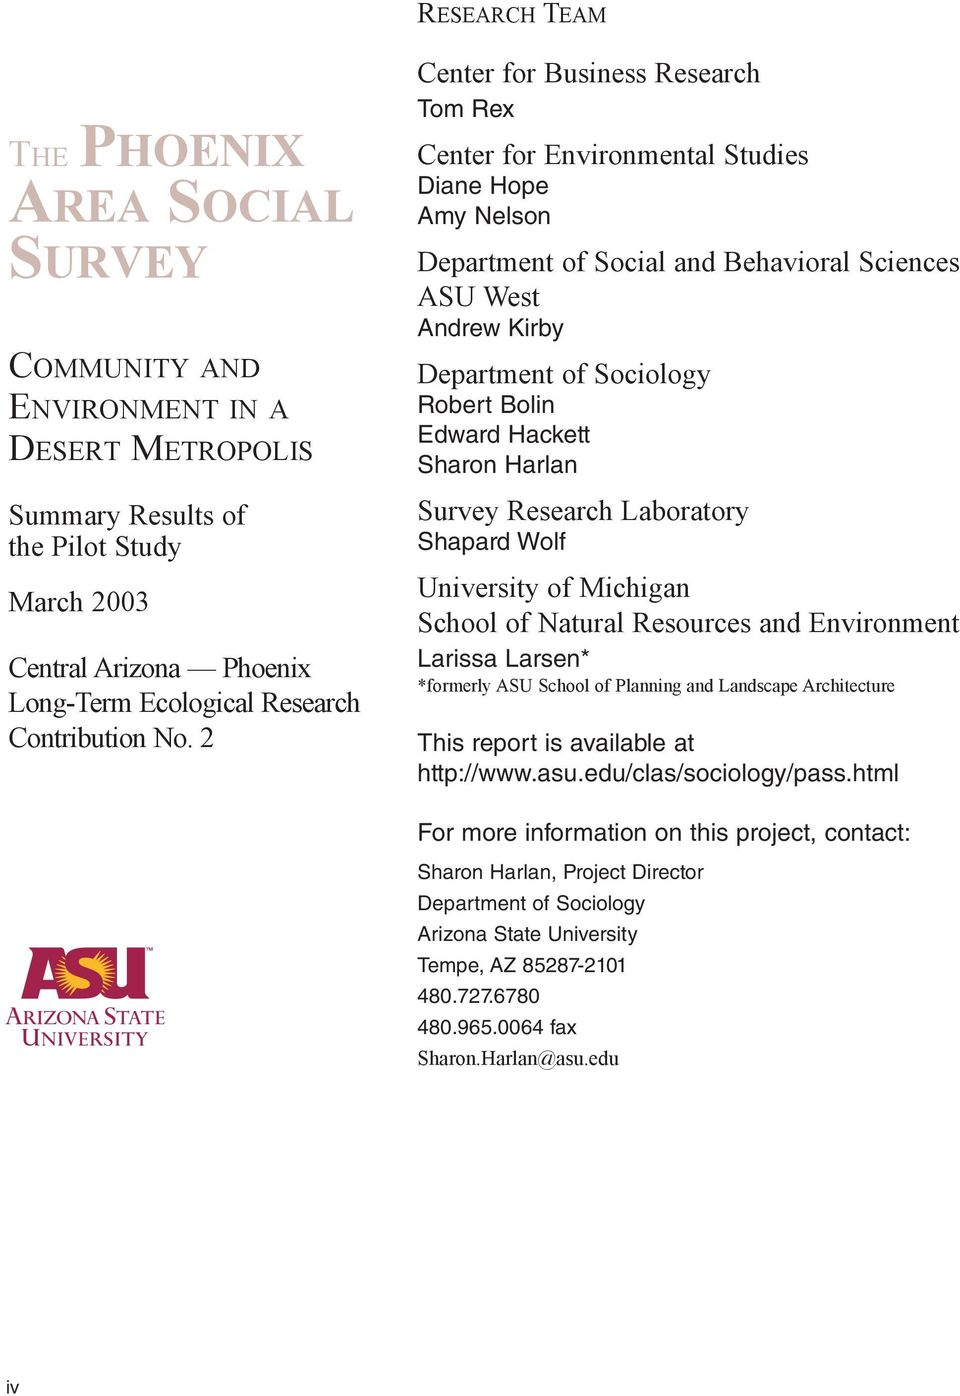 2 Center for Business Research Tom Rex Center for Environmental Studies Diane Hope Amy Nelson Department of Social and Behavioral Sciences ASU West Andrew Kirby Department of Sociology Robert Bolin